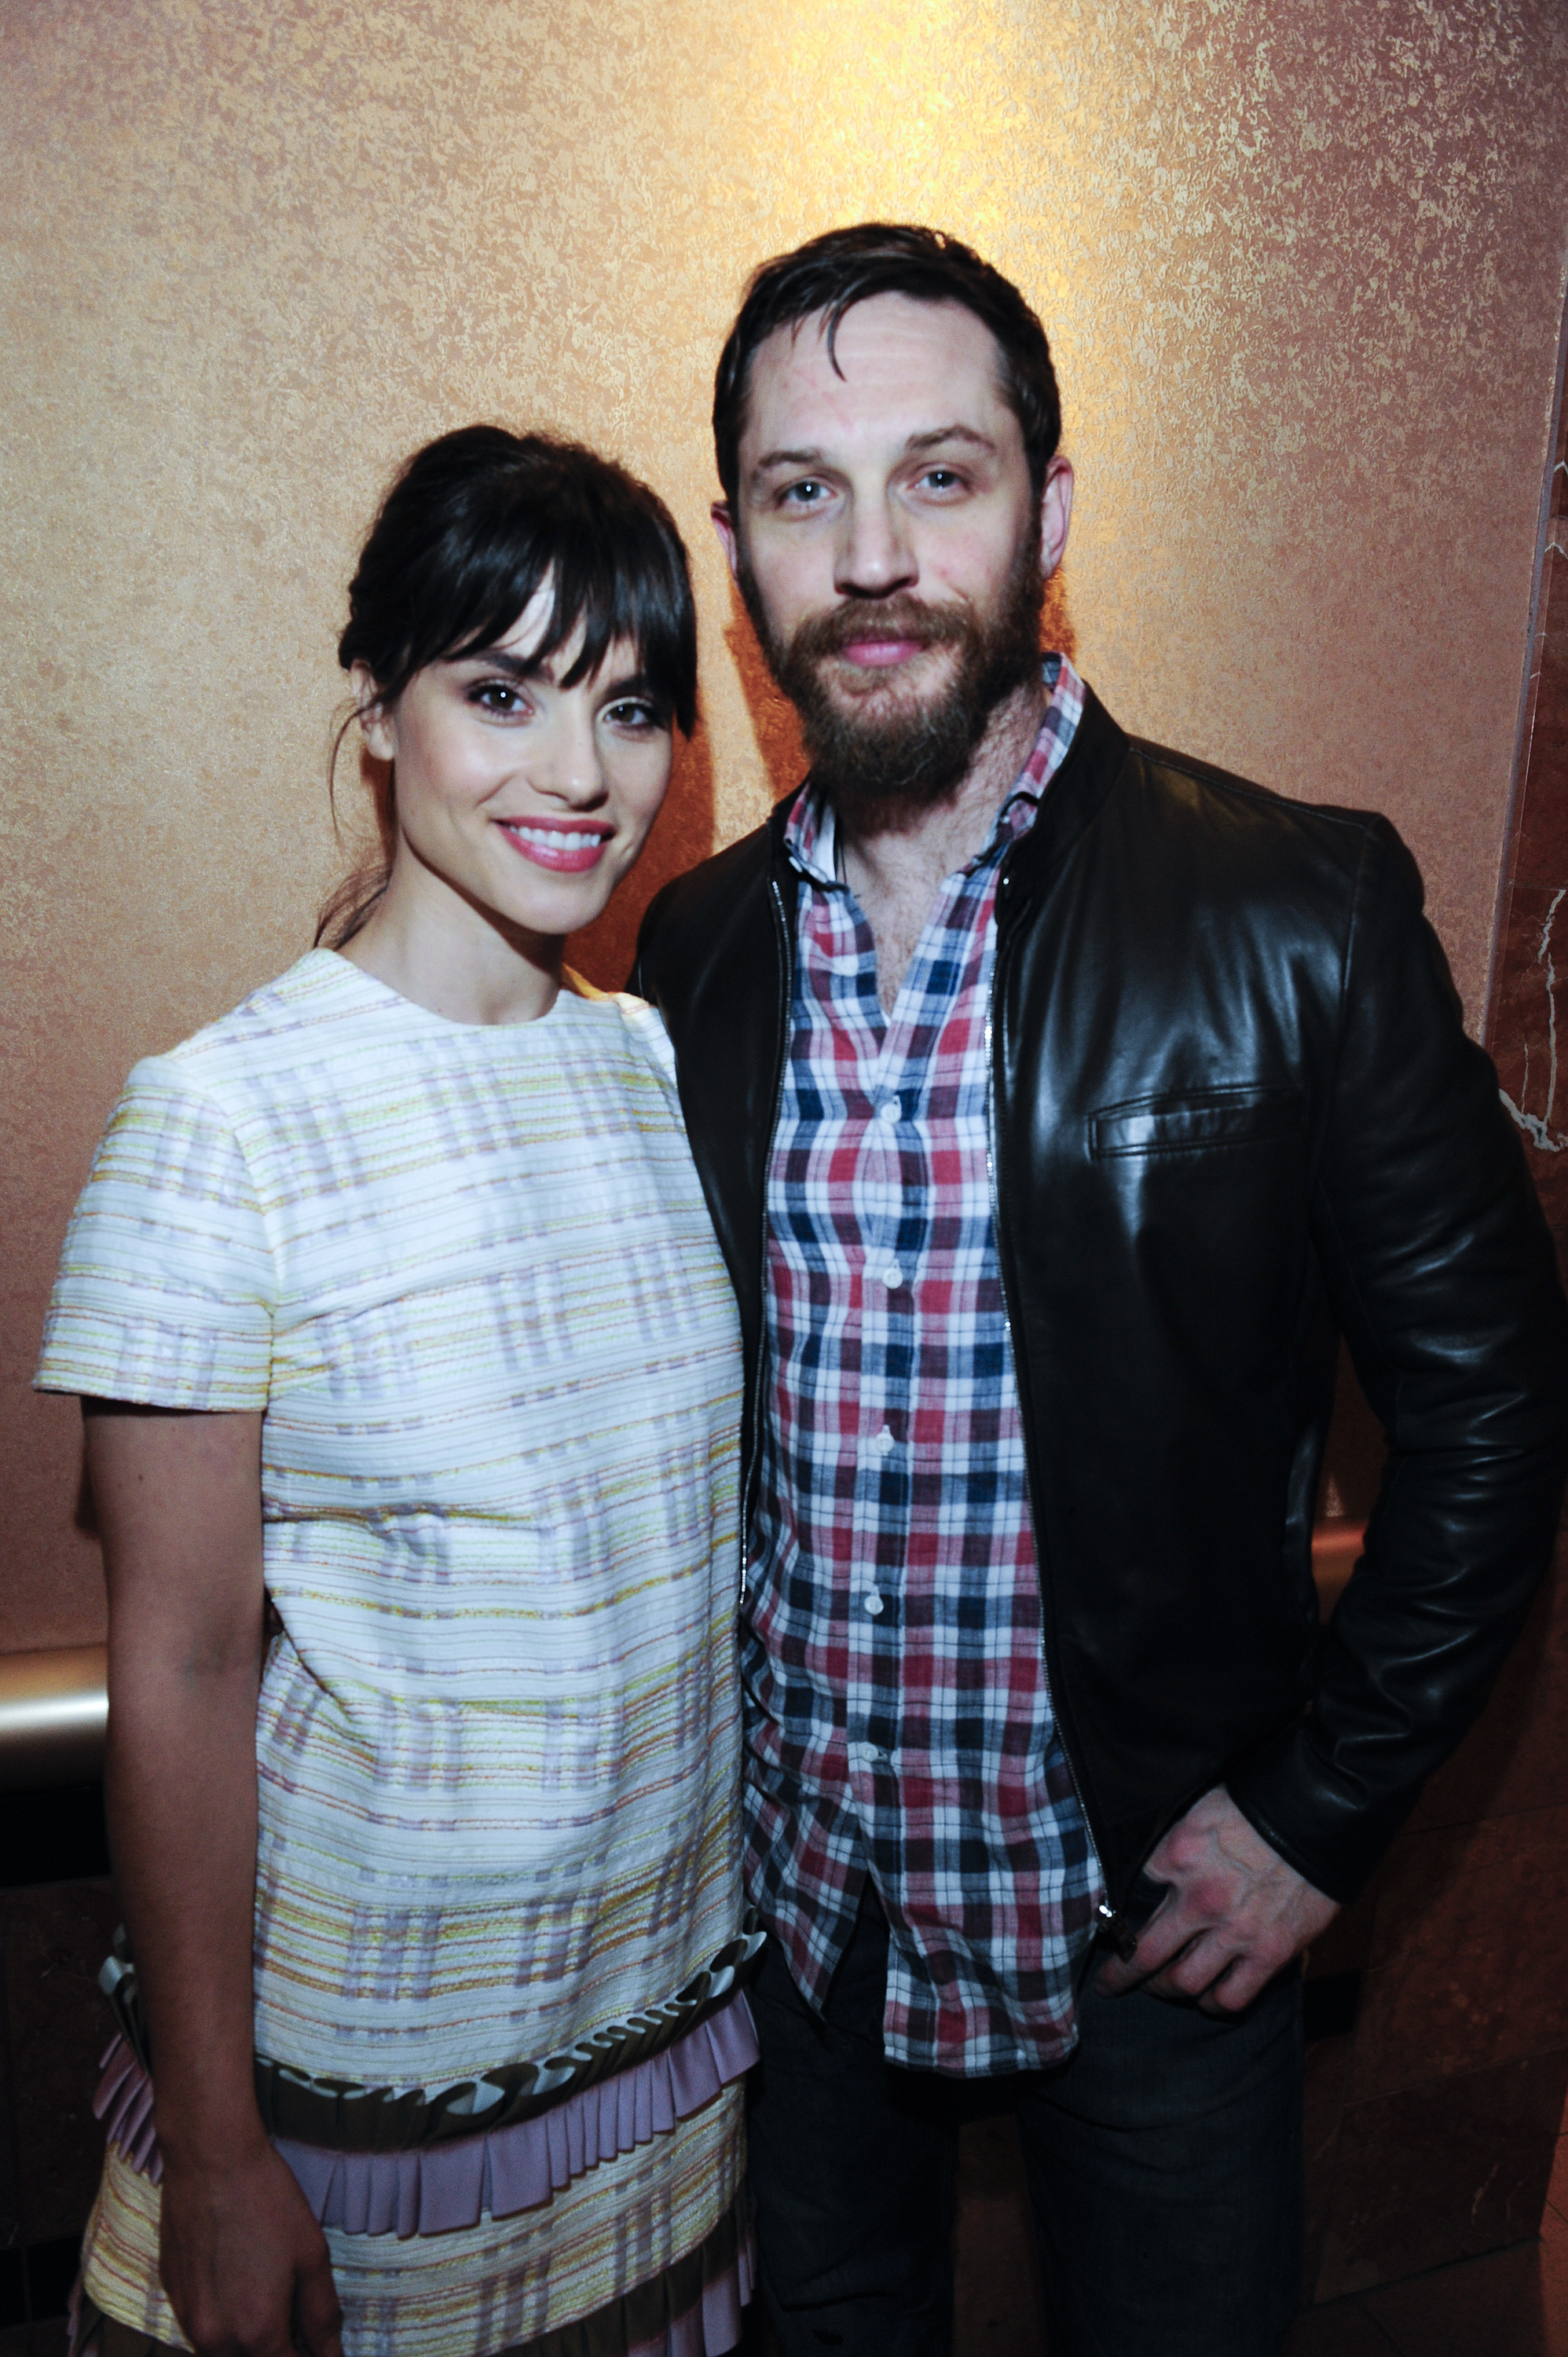 Charlotte Riley and Tom Hardy attend the US Premiere of 'Grand Street' during the 26th Annual Palm Springs International Film Festival Film on Jan. 8, 2015 at The Regal Theater in Palm Springs, California.